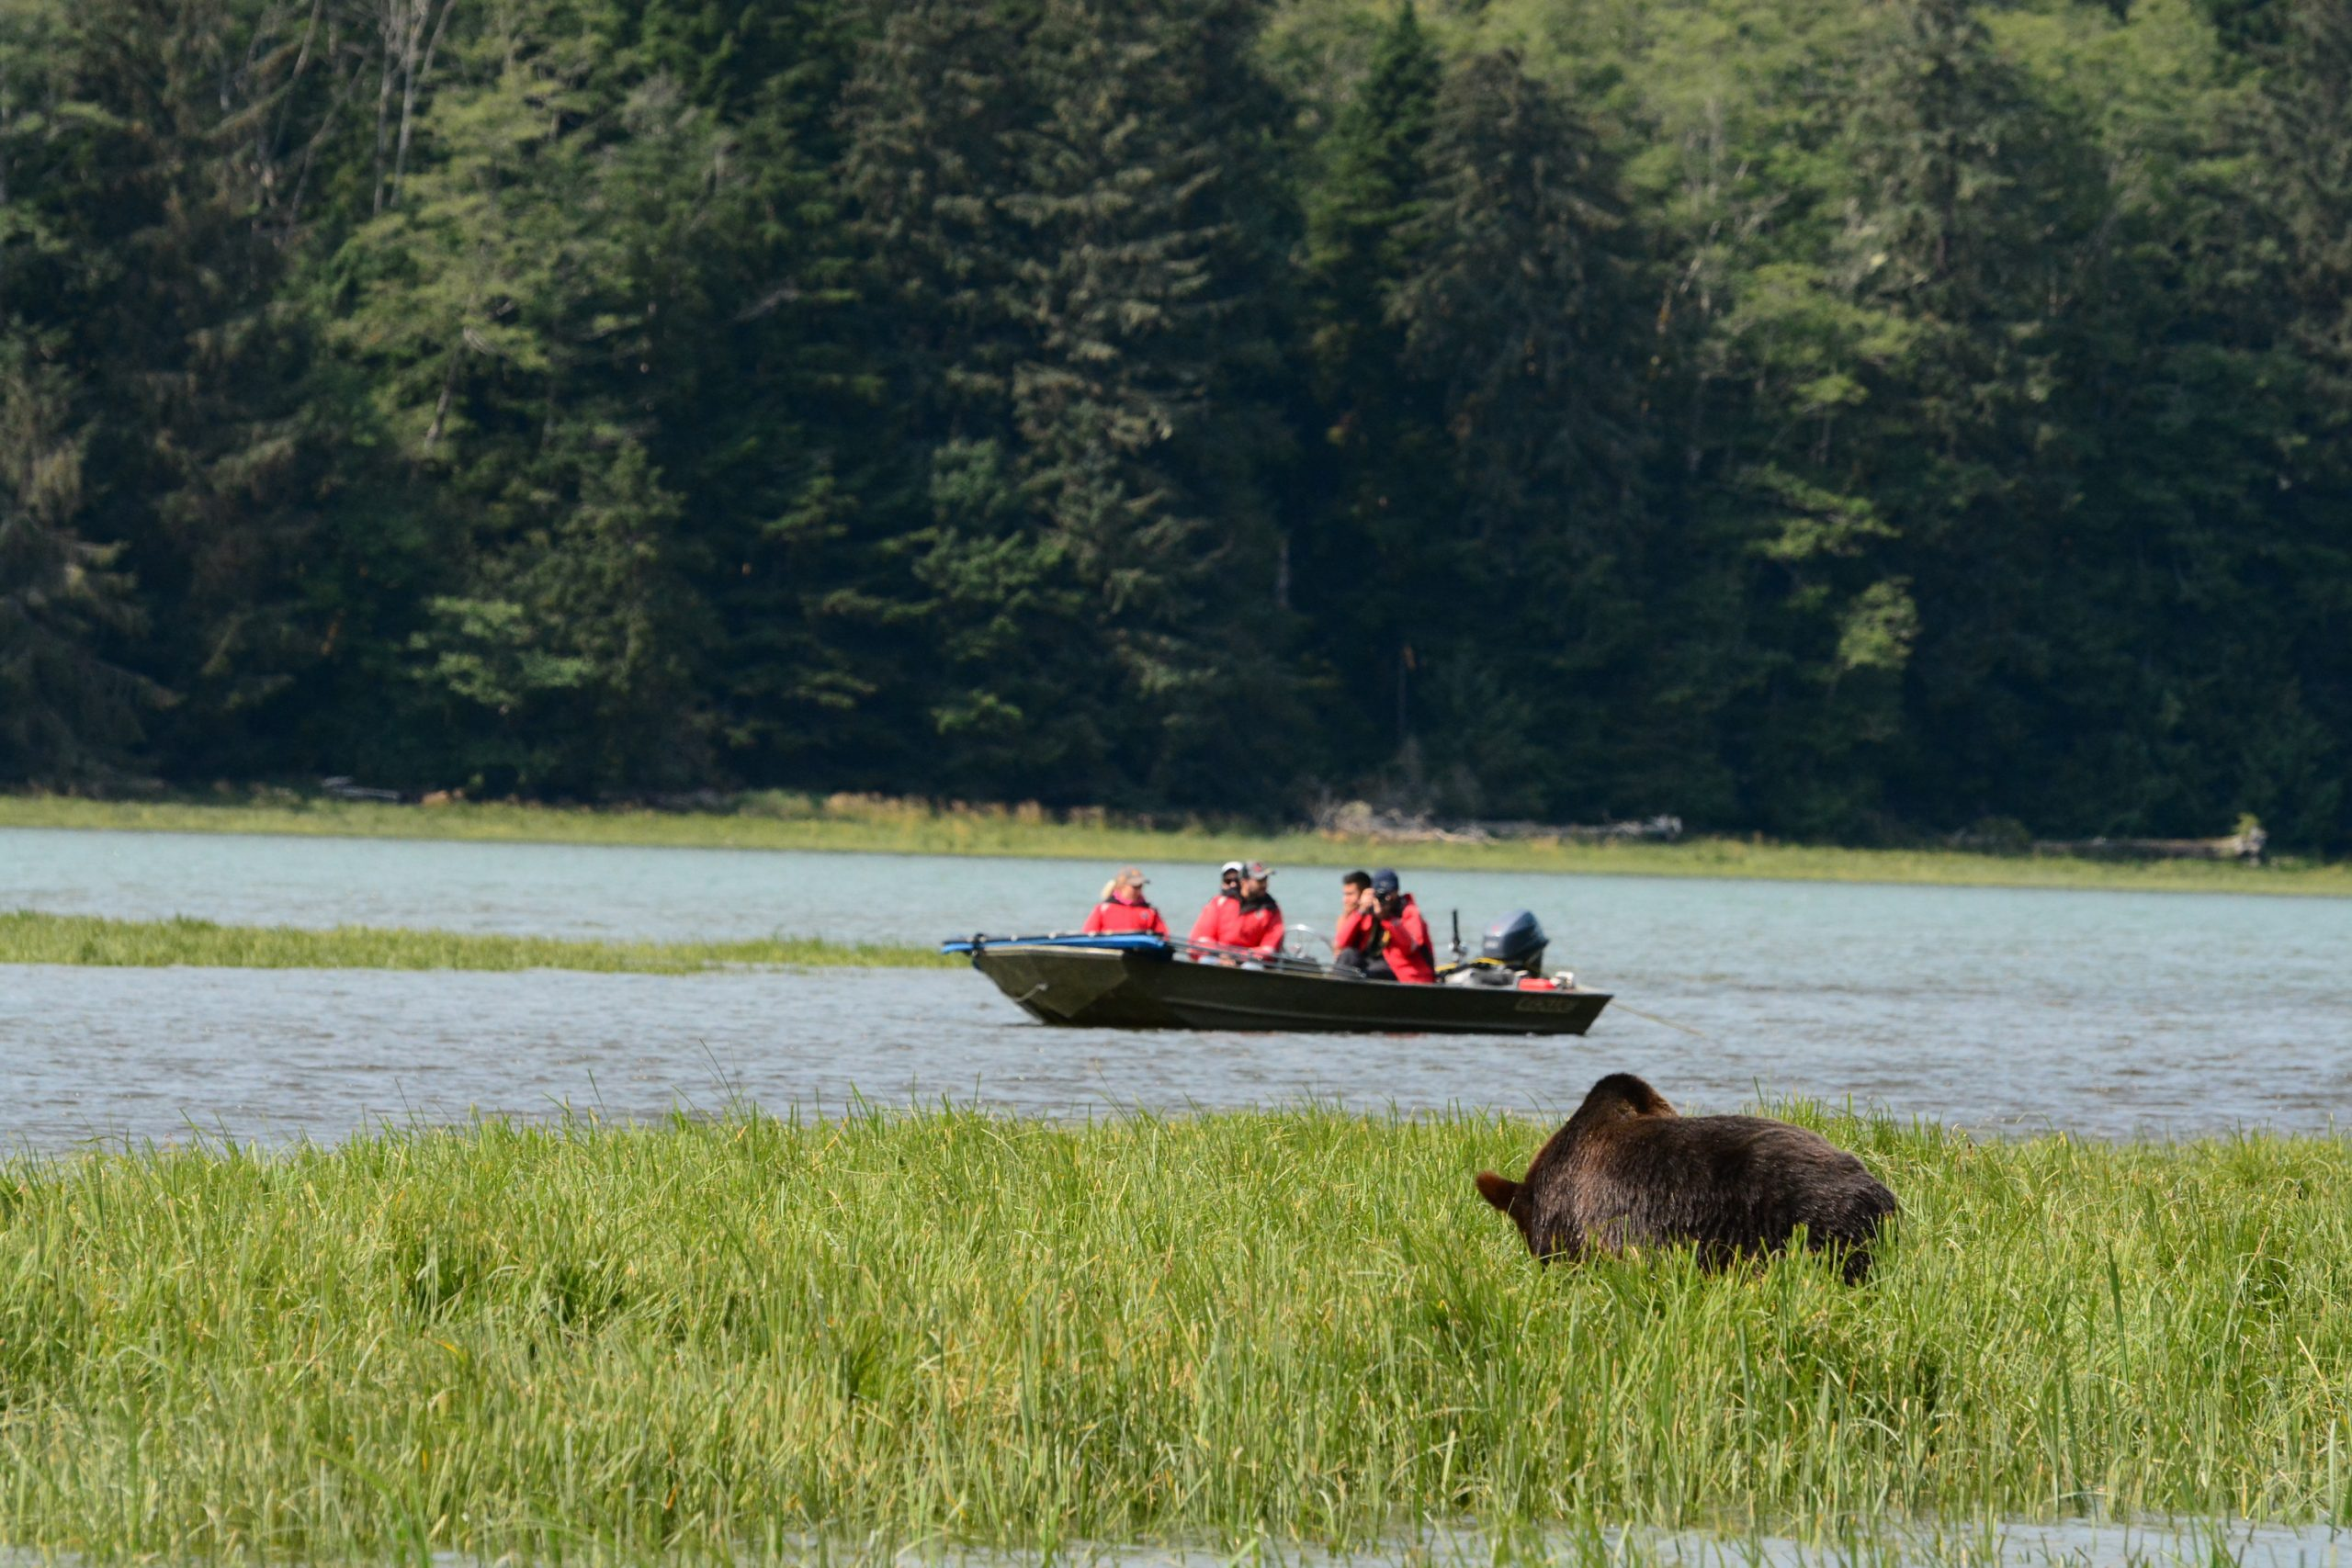 """<div id=""""tc-link""""><a href=""""https://grizzlytours.com"""" target=""""_blank"""">Knight Inlet Lodge</a></div>"""